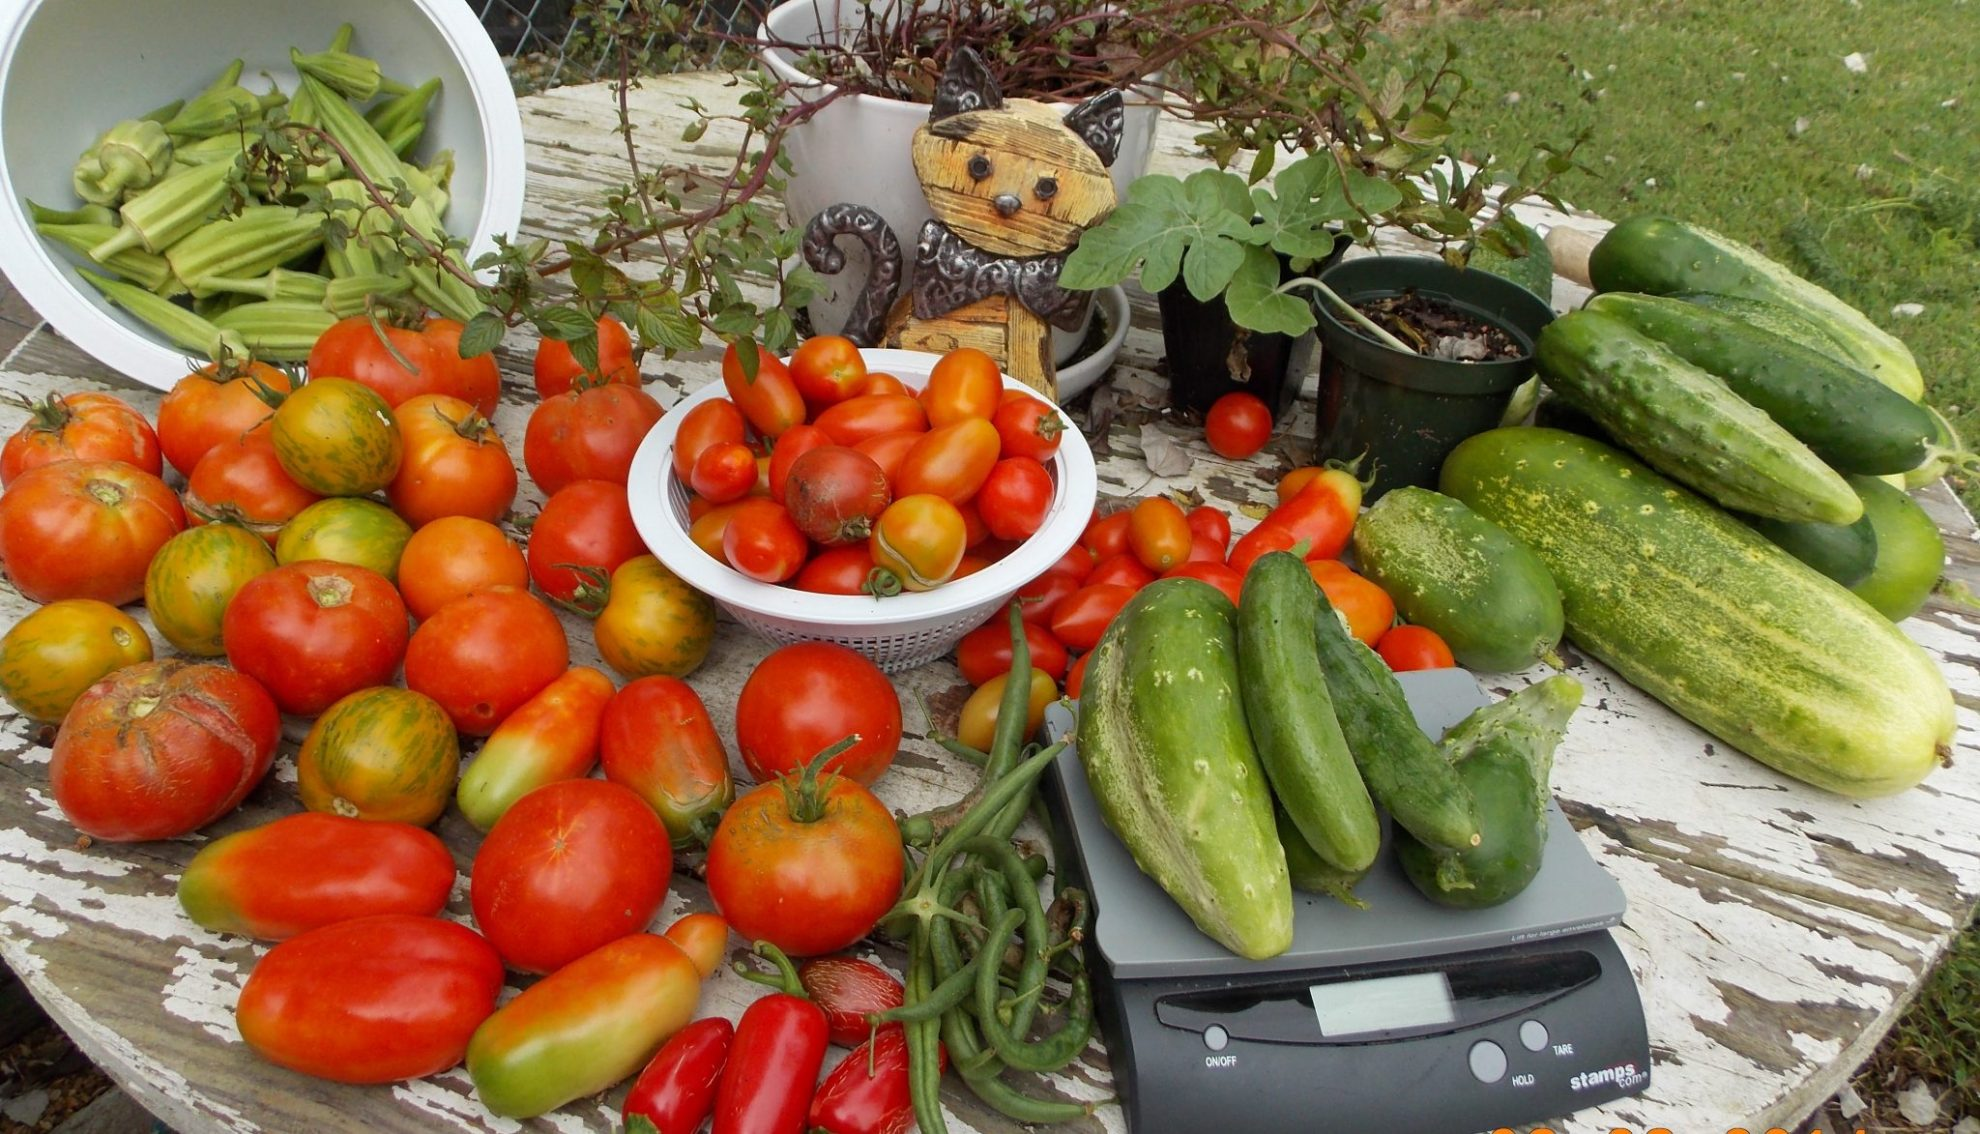 It's sometimes hard to tell when the produce is perfectly ready. Do you know when to harvest vegetables in the garden, and fruit?